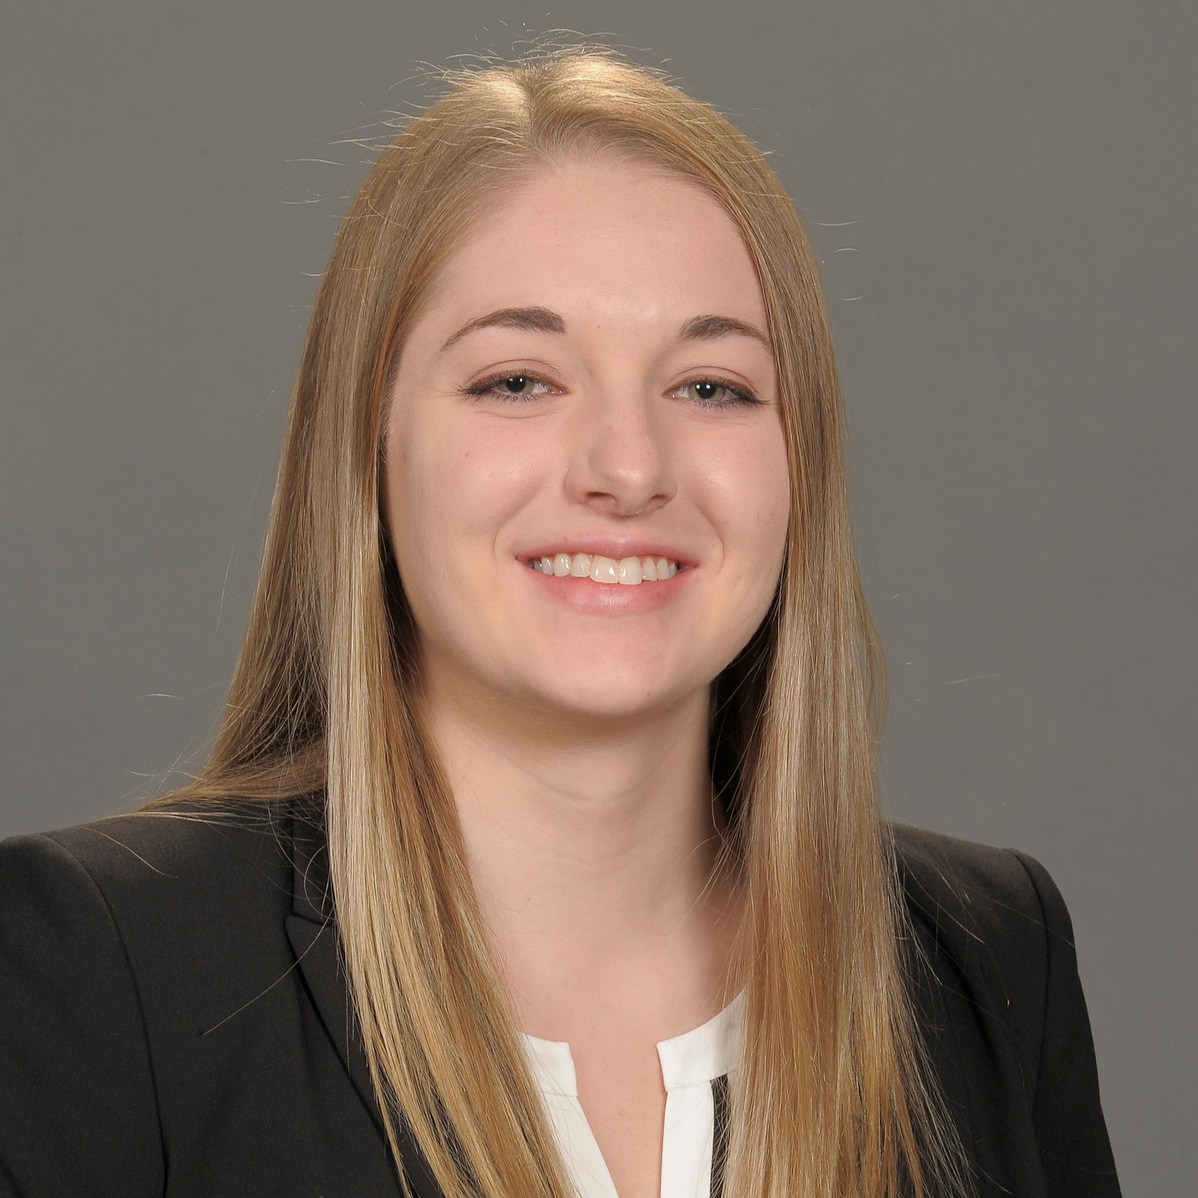 Kaitlyn Costello, J.D. Candidate 2019